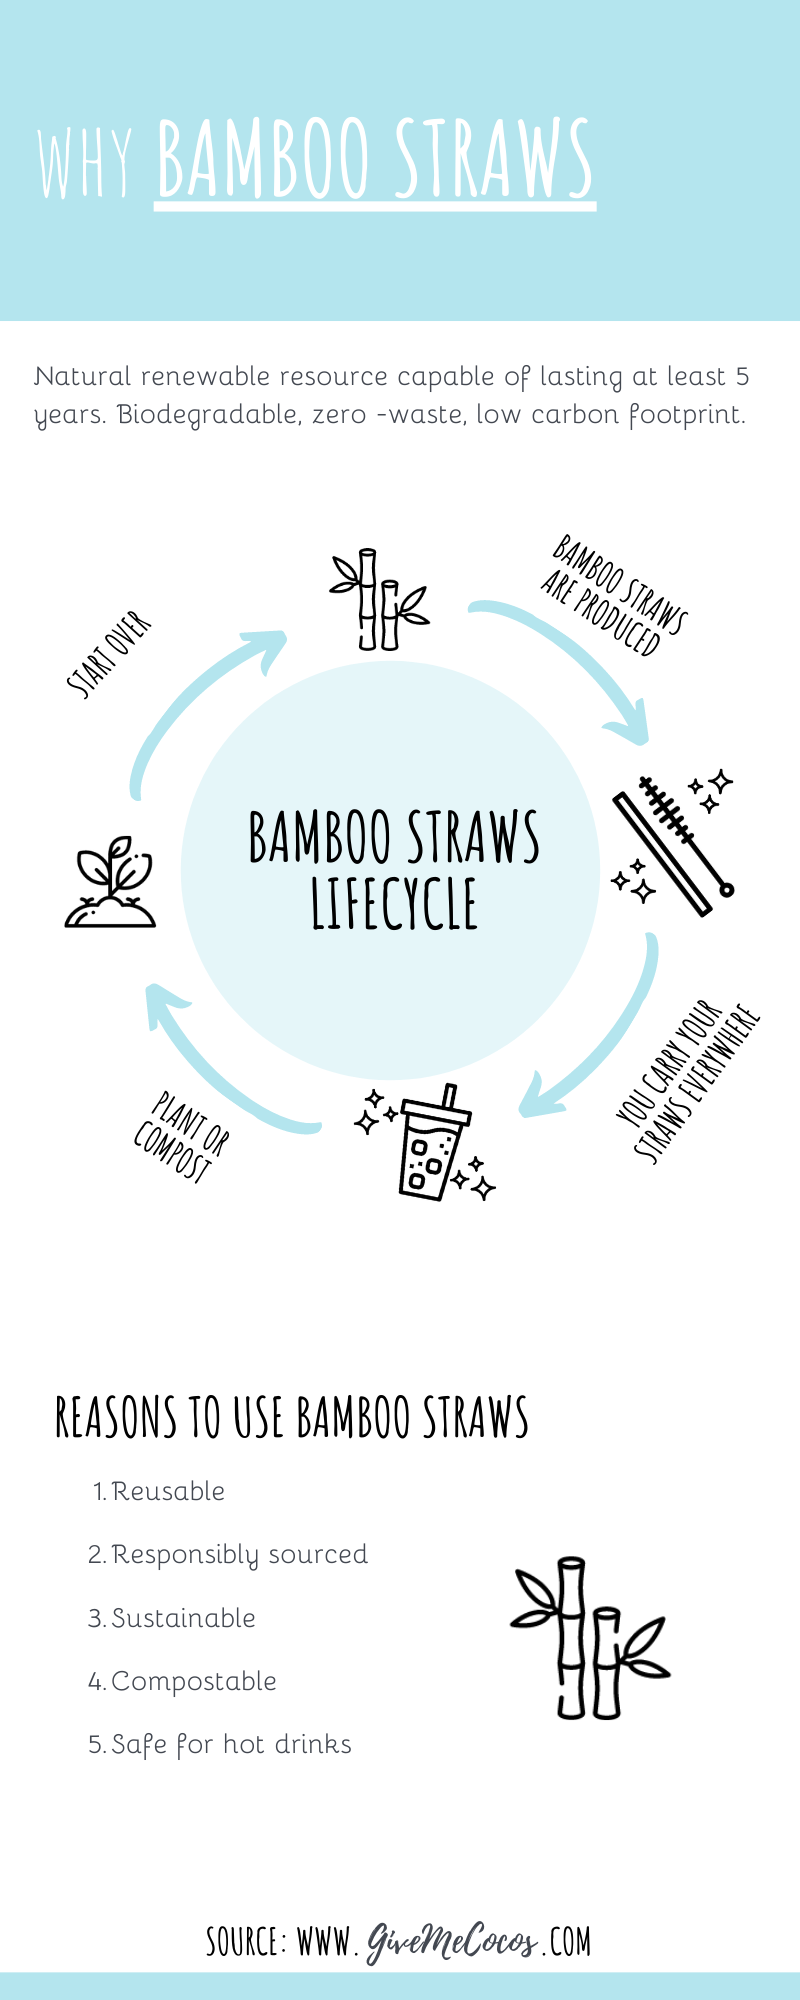 Why You Should Use Bamboo Straws